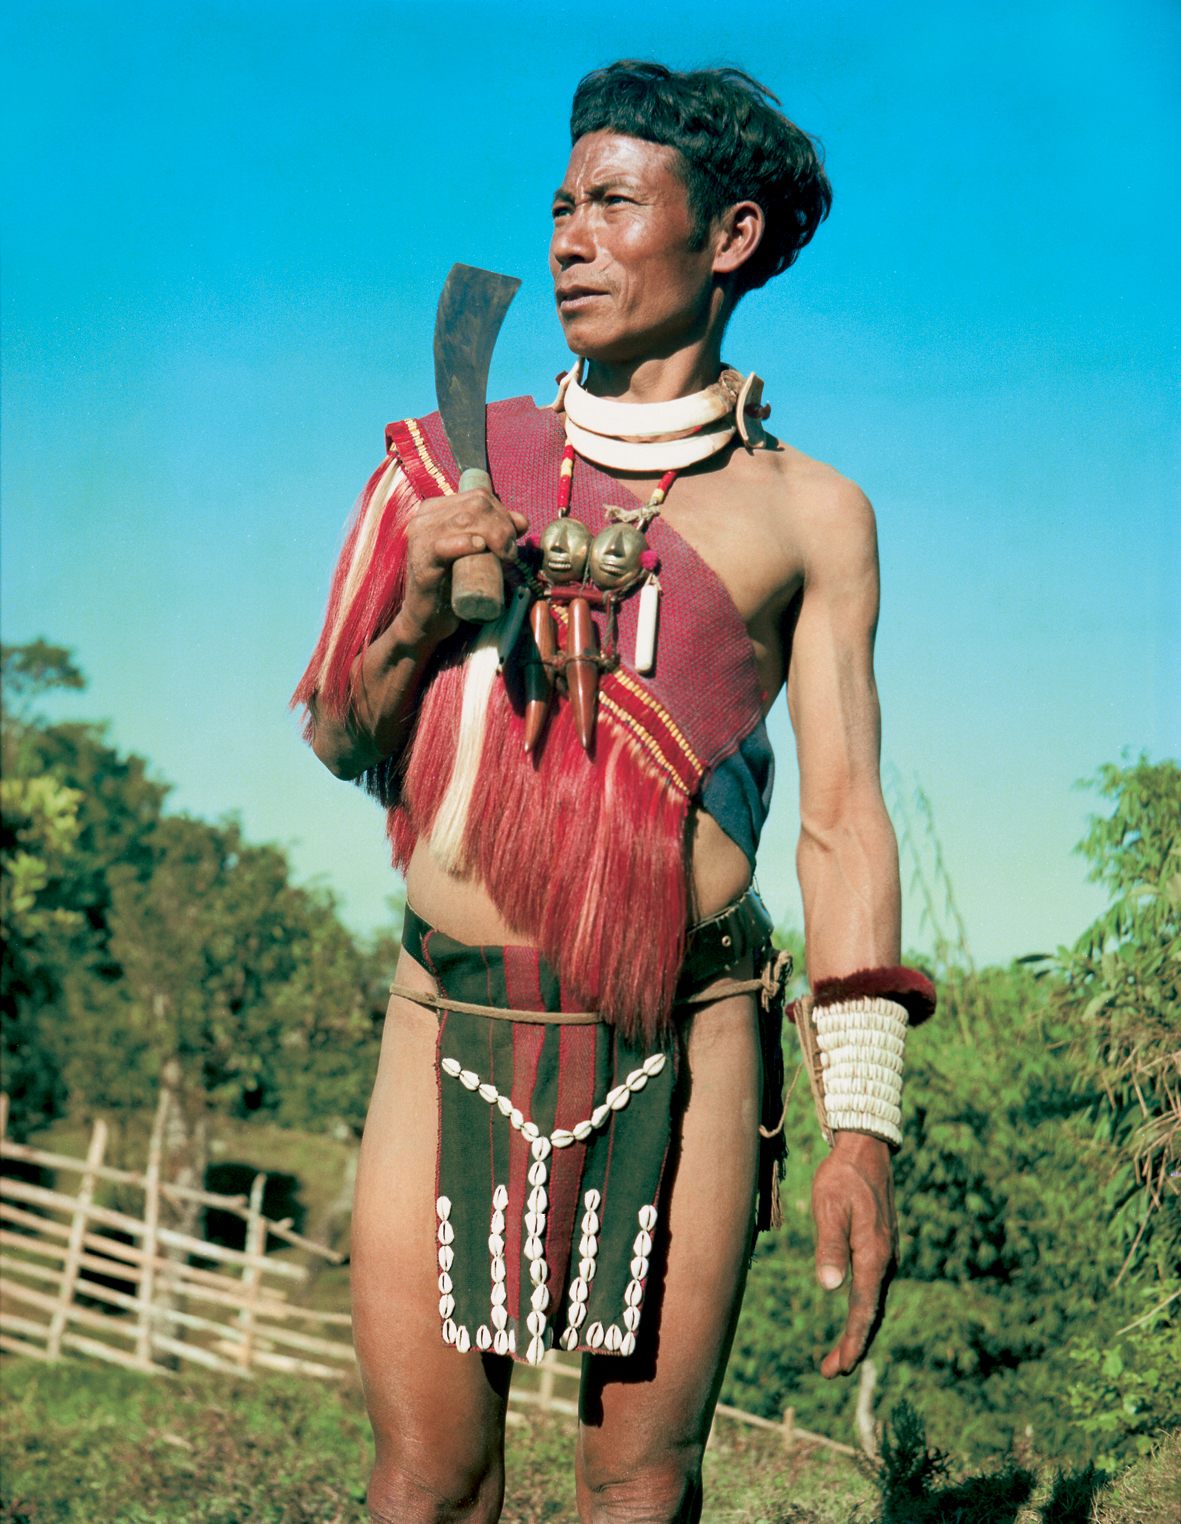 Naked image of naga girls of nagaland nackt images